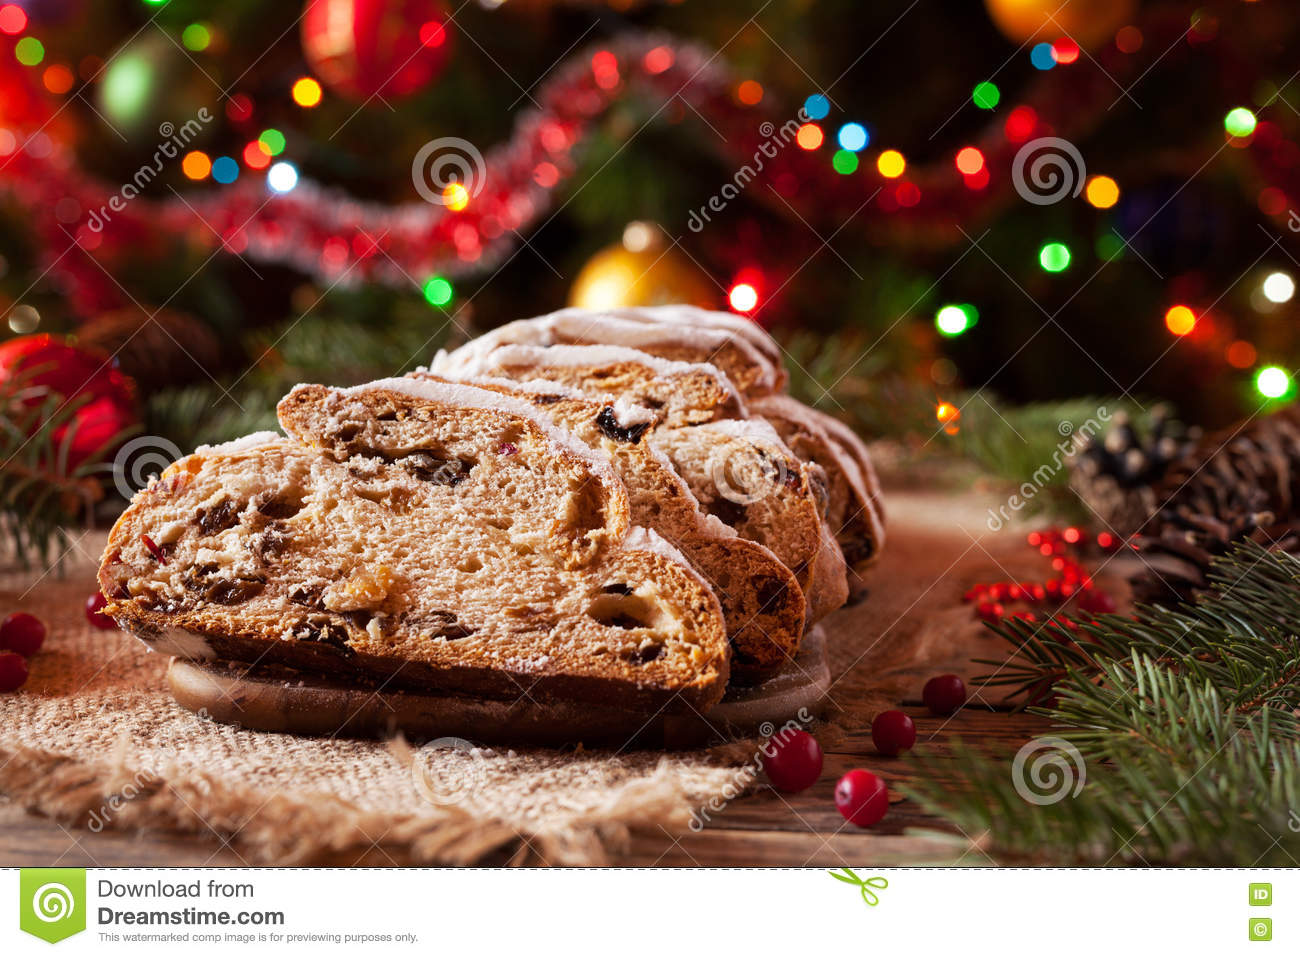 Traditional german christmas decorations - Traditional German Christmas Cake Stollen With Marzipan Nuts And Berries Celebration Decorations